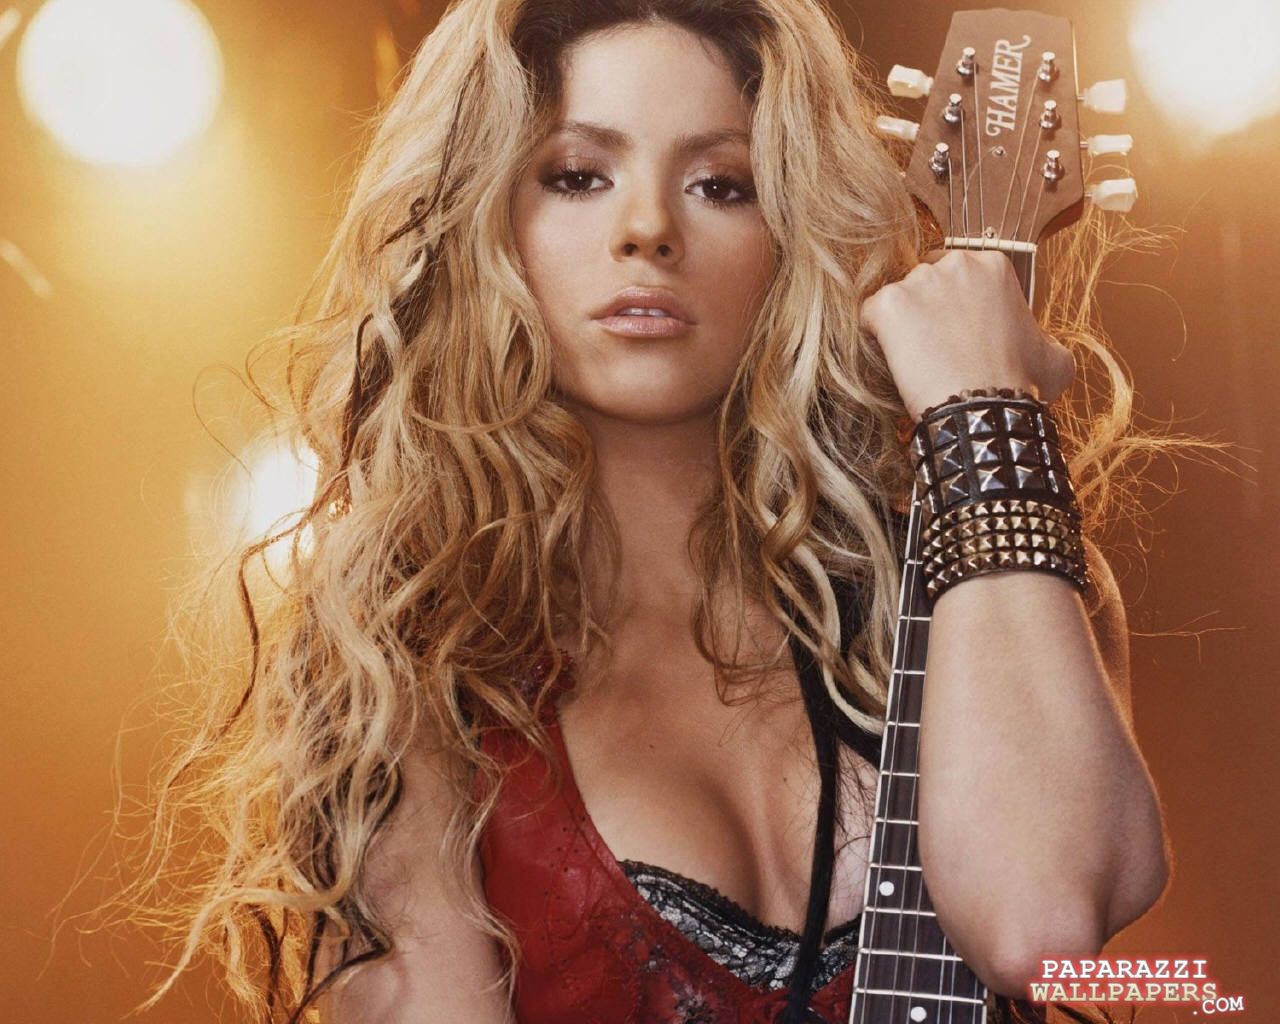 Home / Shakira / shakira wallpapers 022